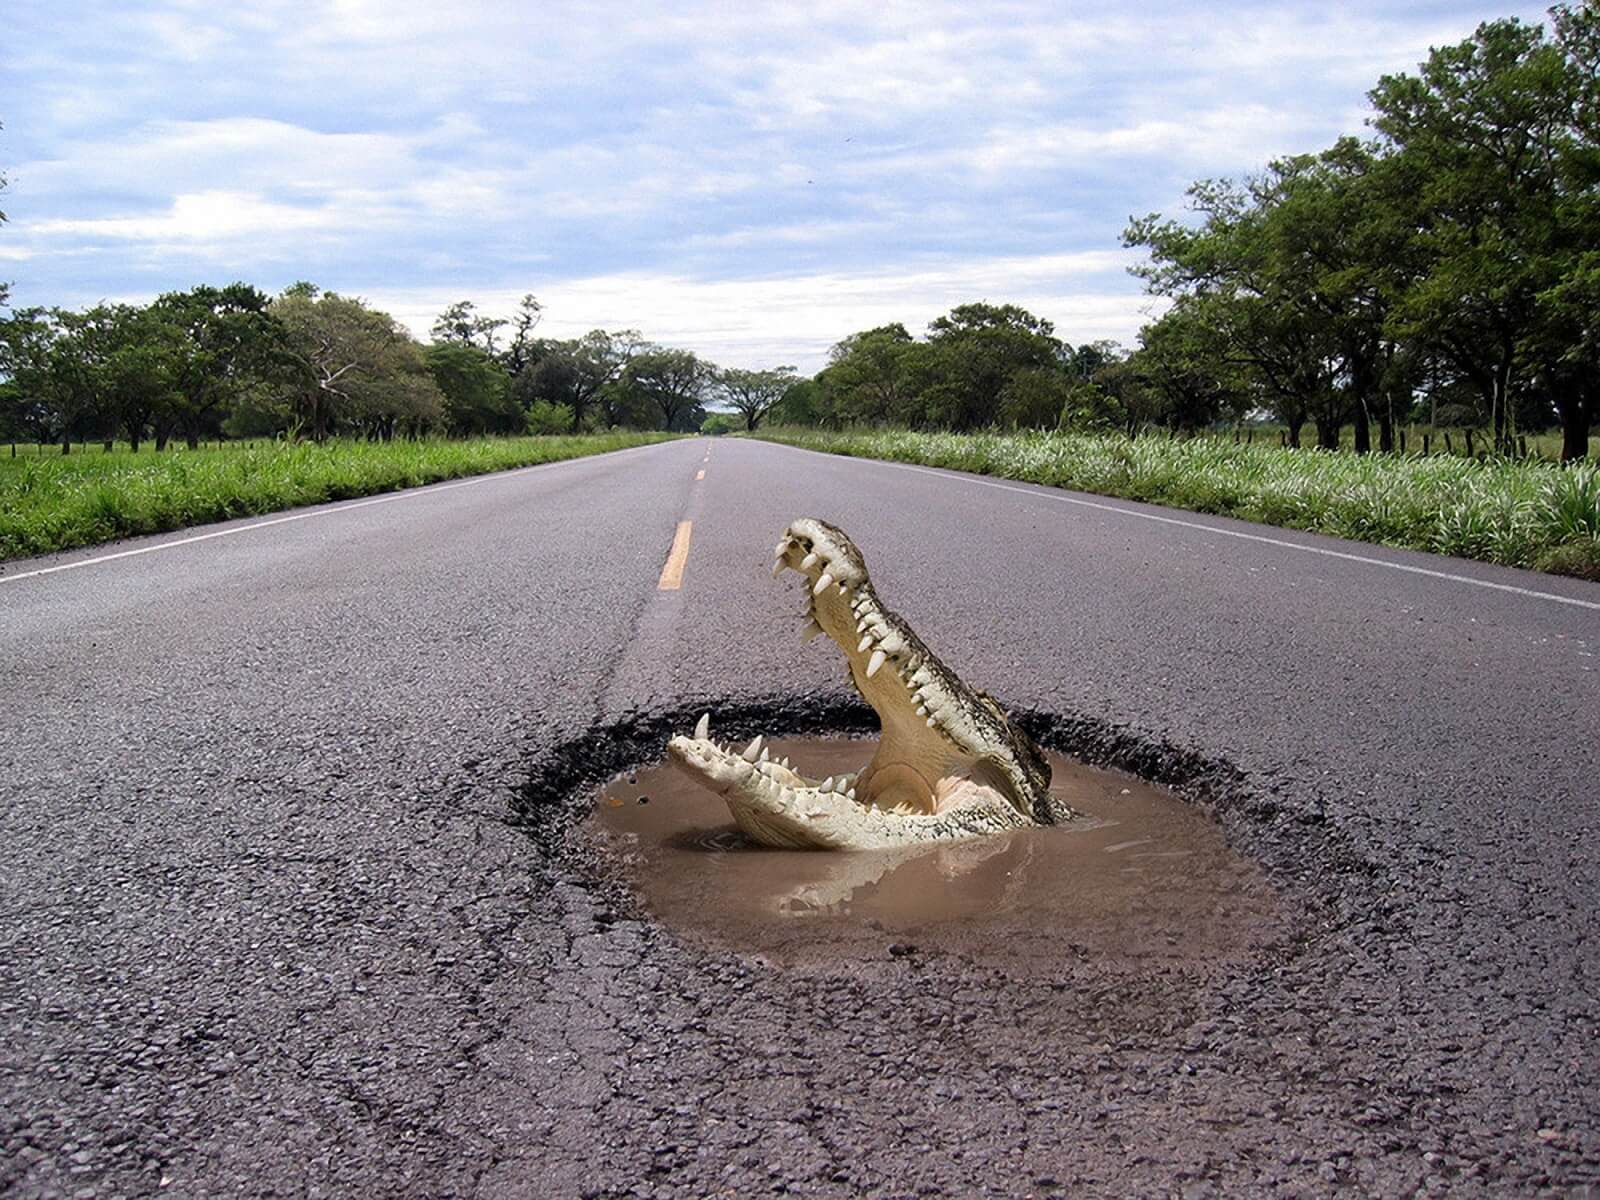 Not quite as bad as a gator in the road but...